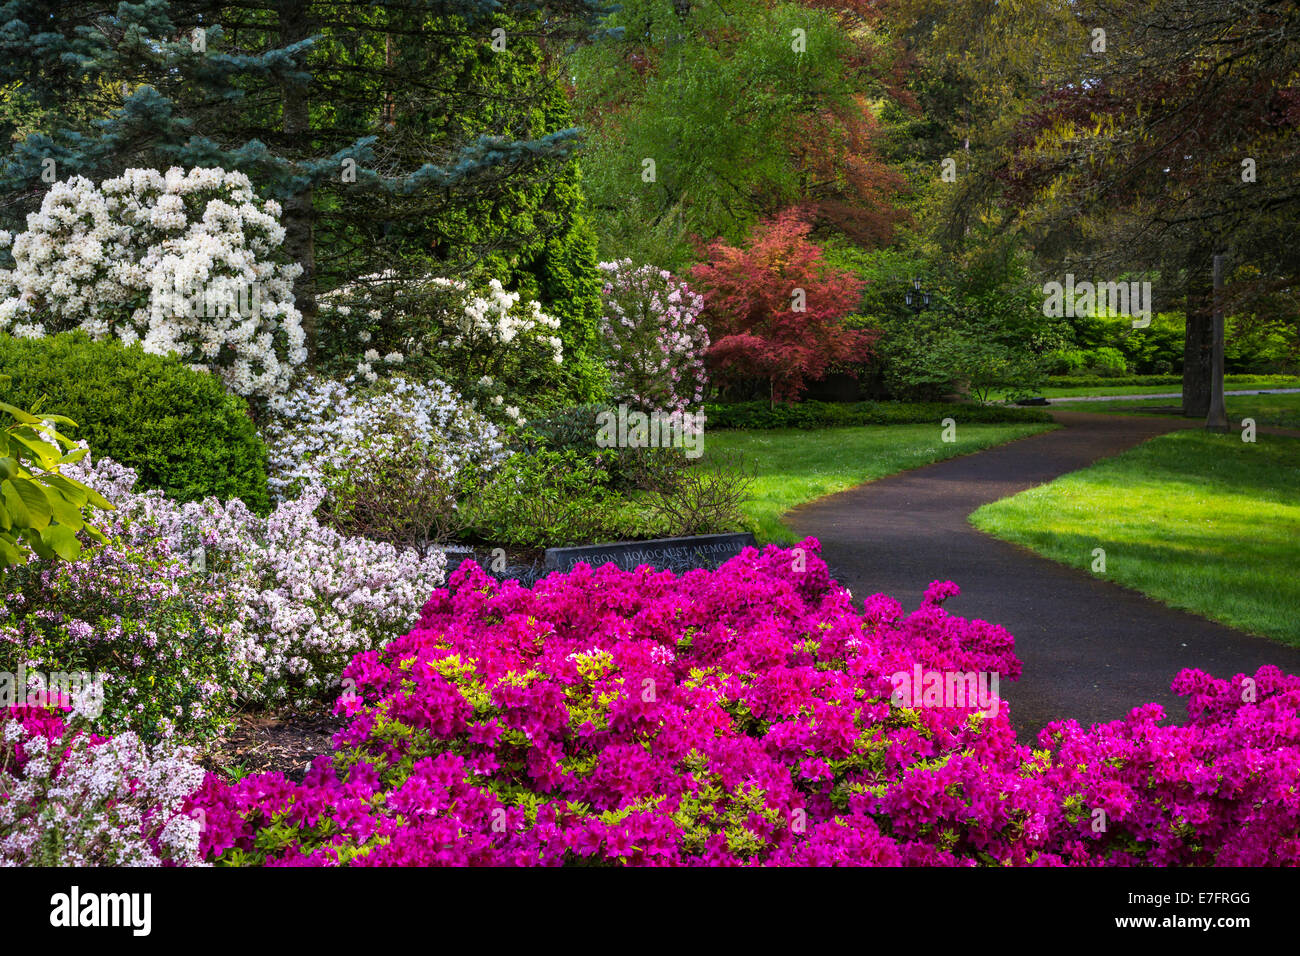 Spring flower displays in the oregon holocaust memorial in washington stock photo 73491840 alamy for Portland spring home and garden show 2017